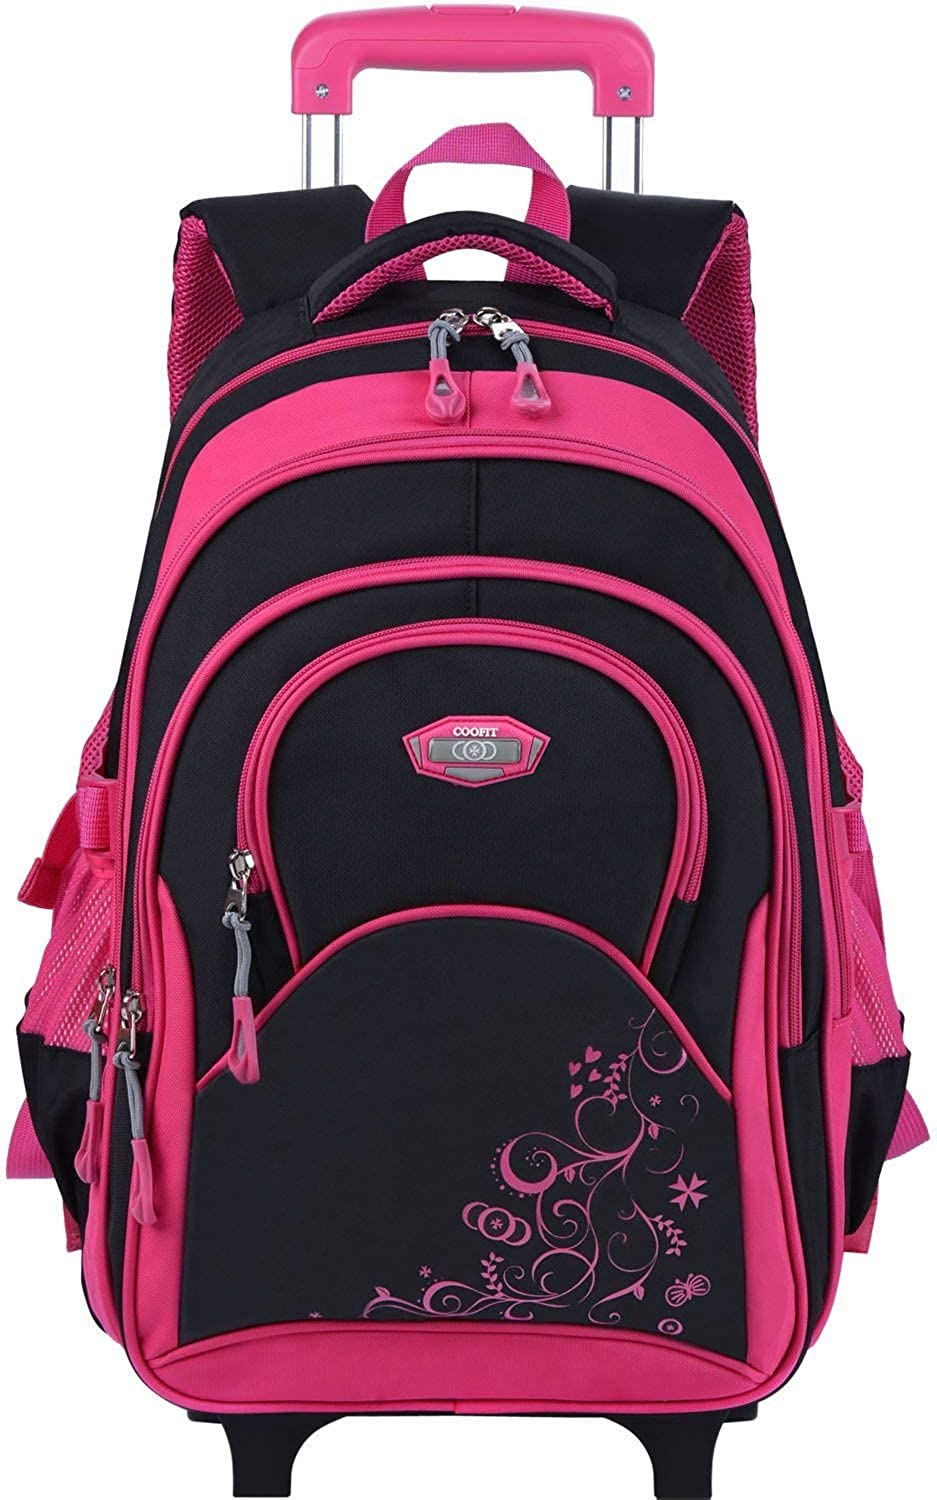 Coofit Design Rolling Backpack for Women Kids School Backpack with Roller Wheeled Laptop Backpack 14in